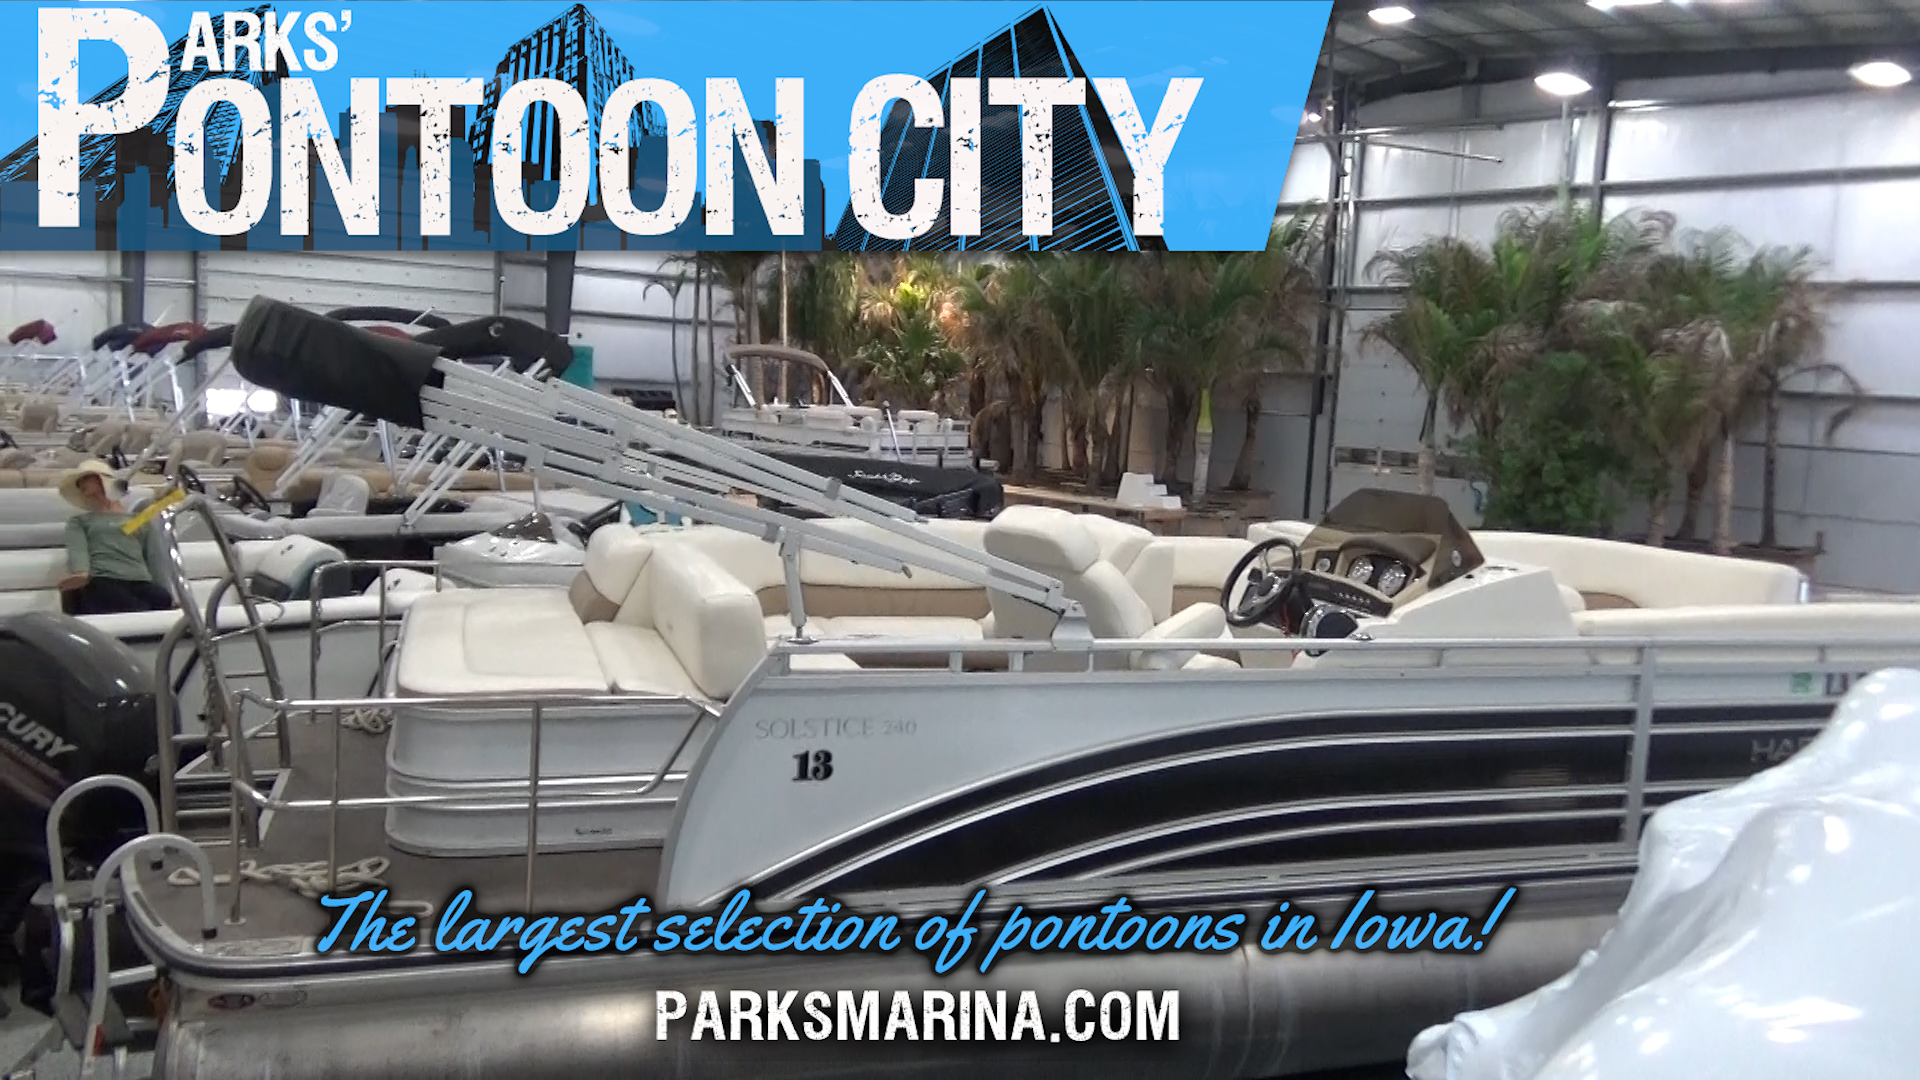 The largest selection of Pontoons is at Pontoon City at Parks Marina